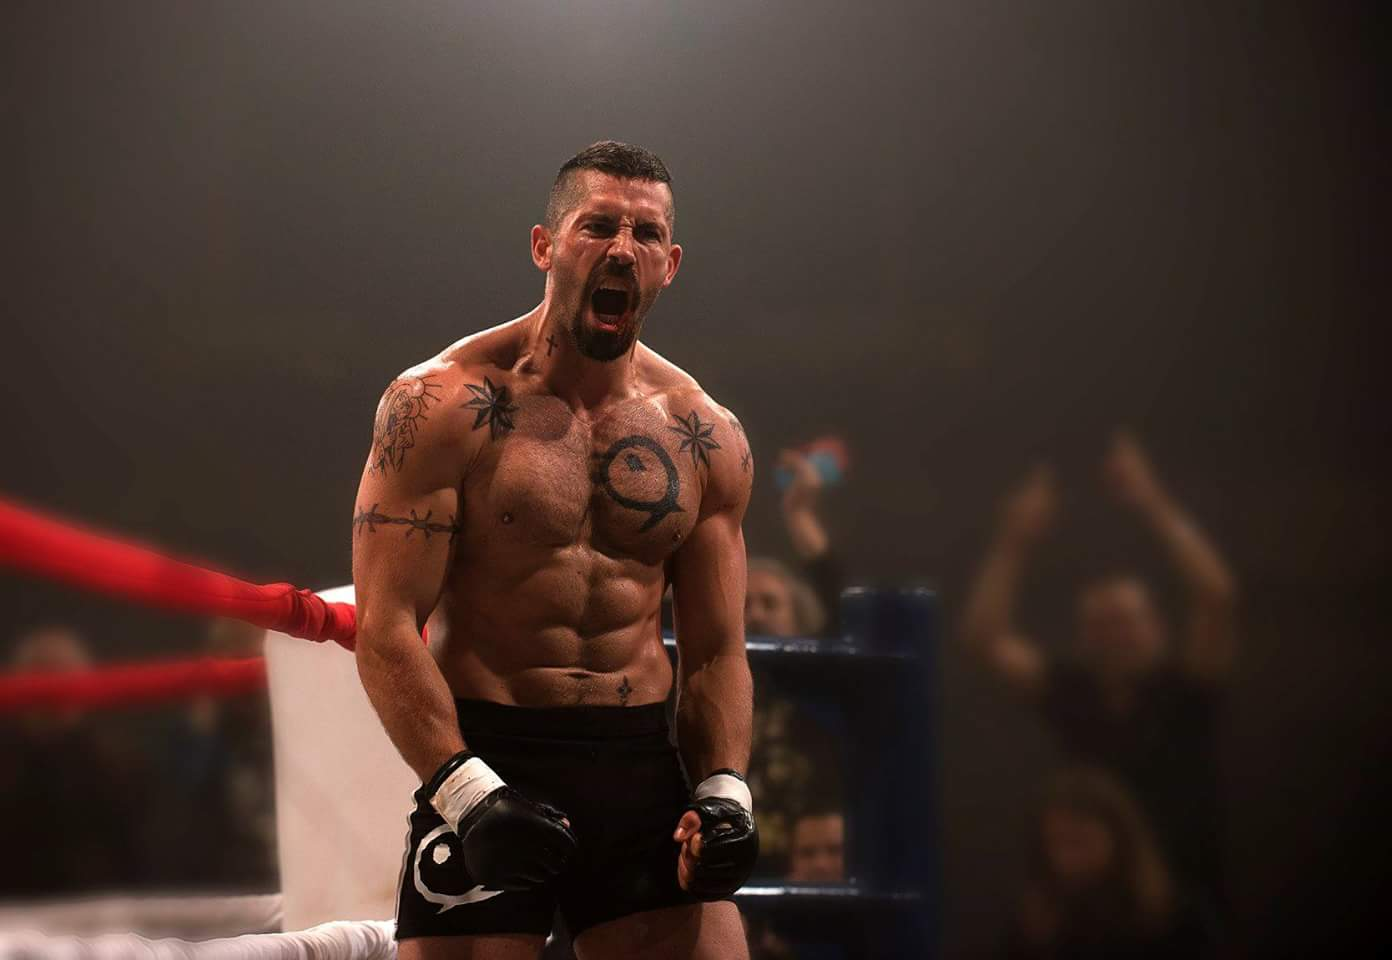 Yuri Boyka The Most Complete Fighter In The World